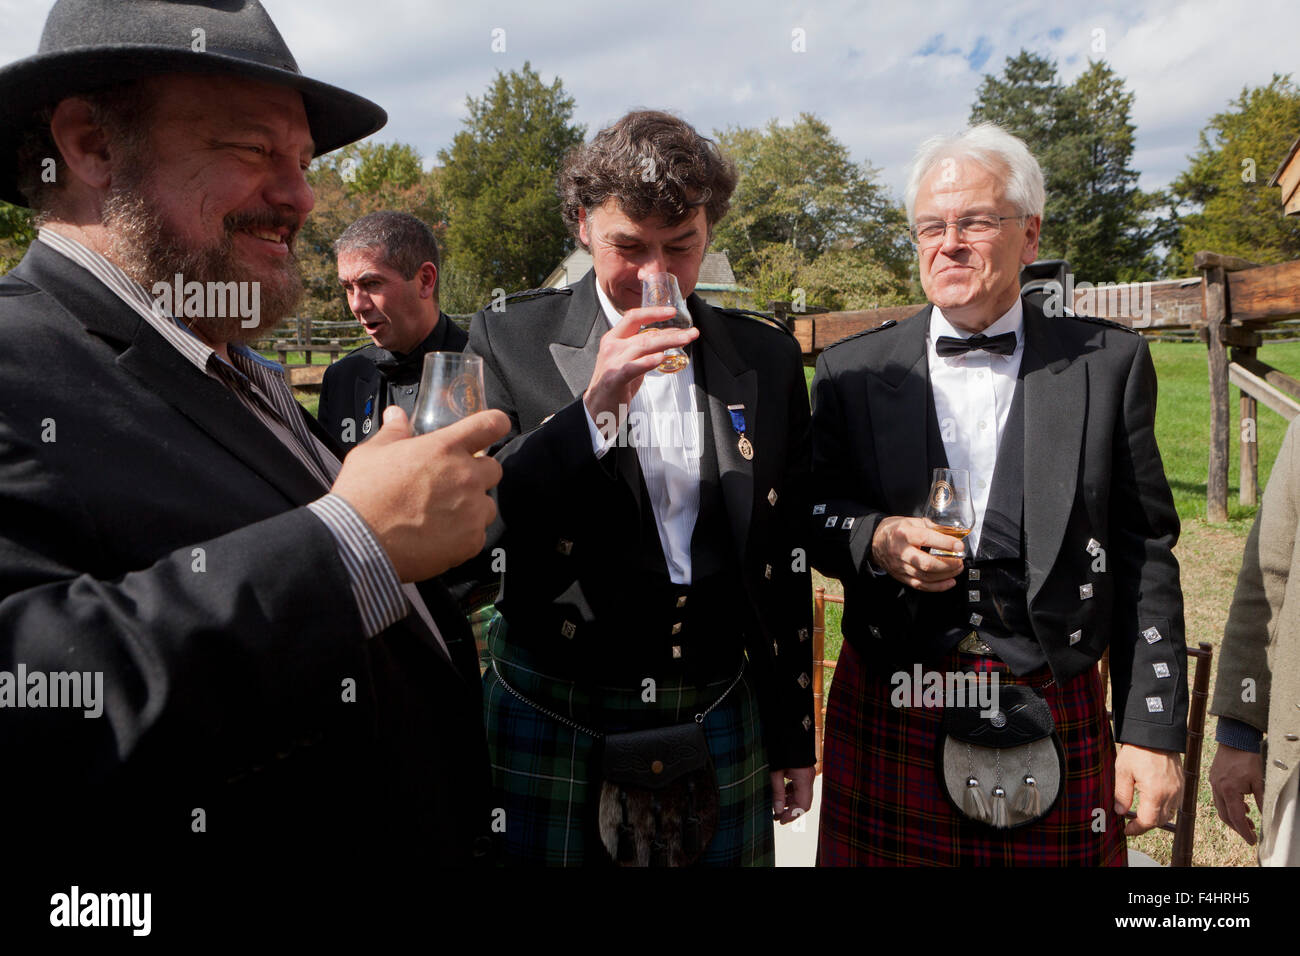 Dave Pickerell, Andy Cant and Dr. William Lumsden tasting George Washington's Distillery Single Malt Whisky - Stock Image